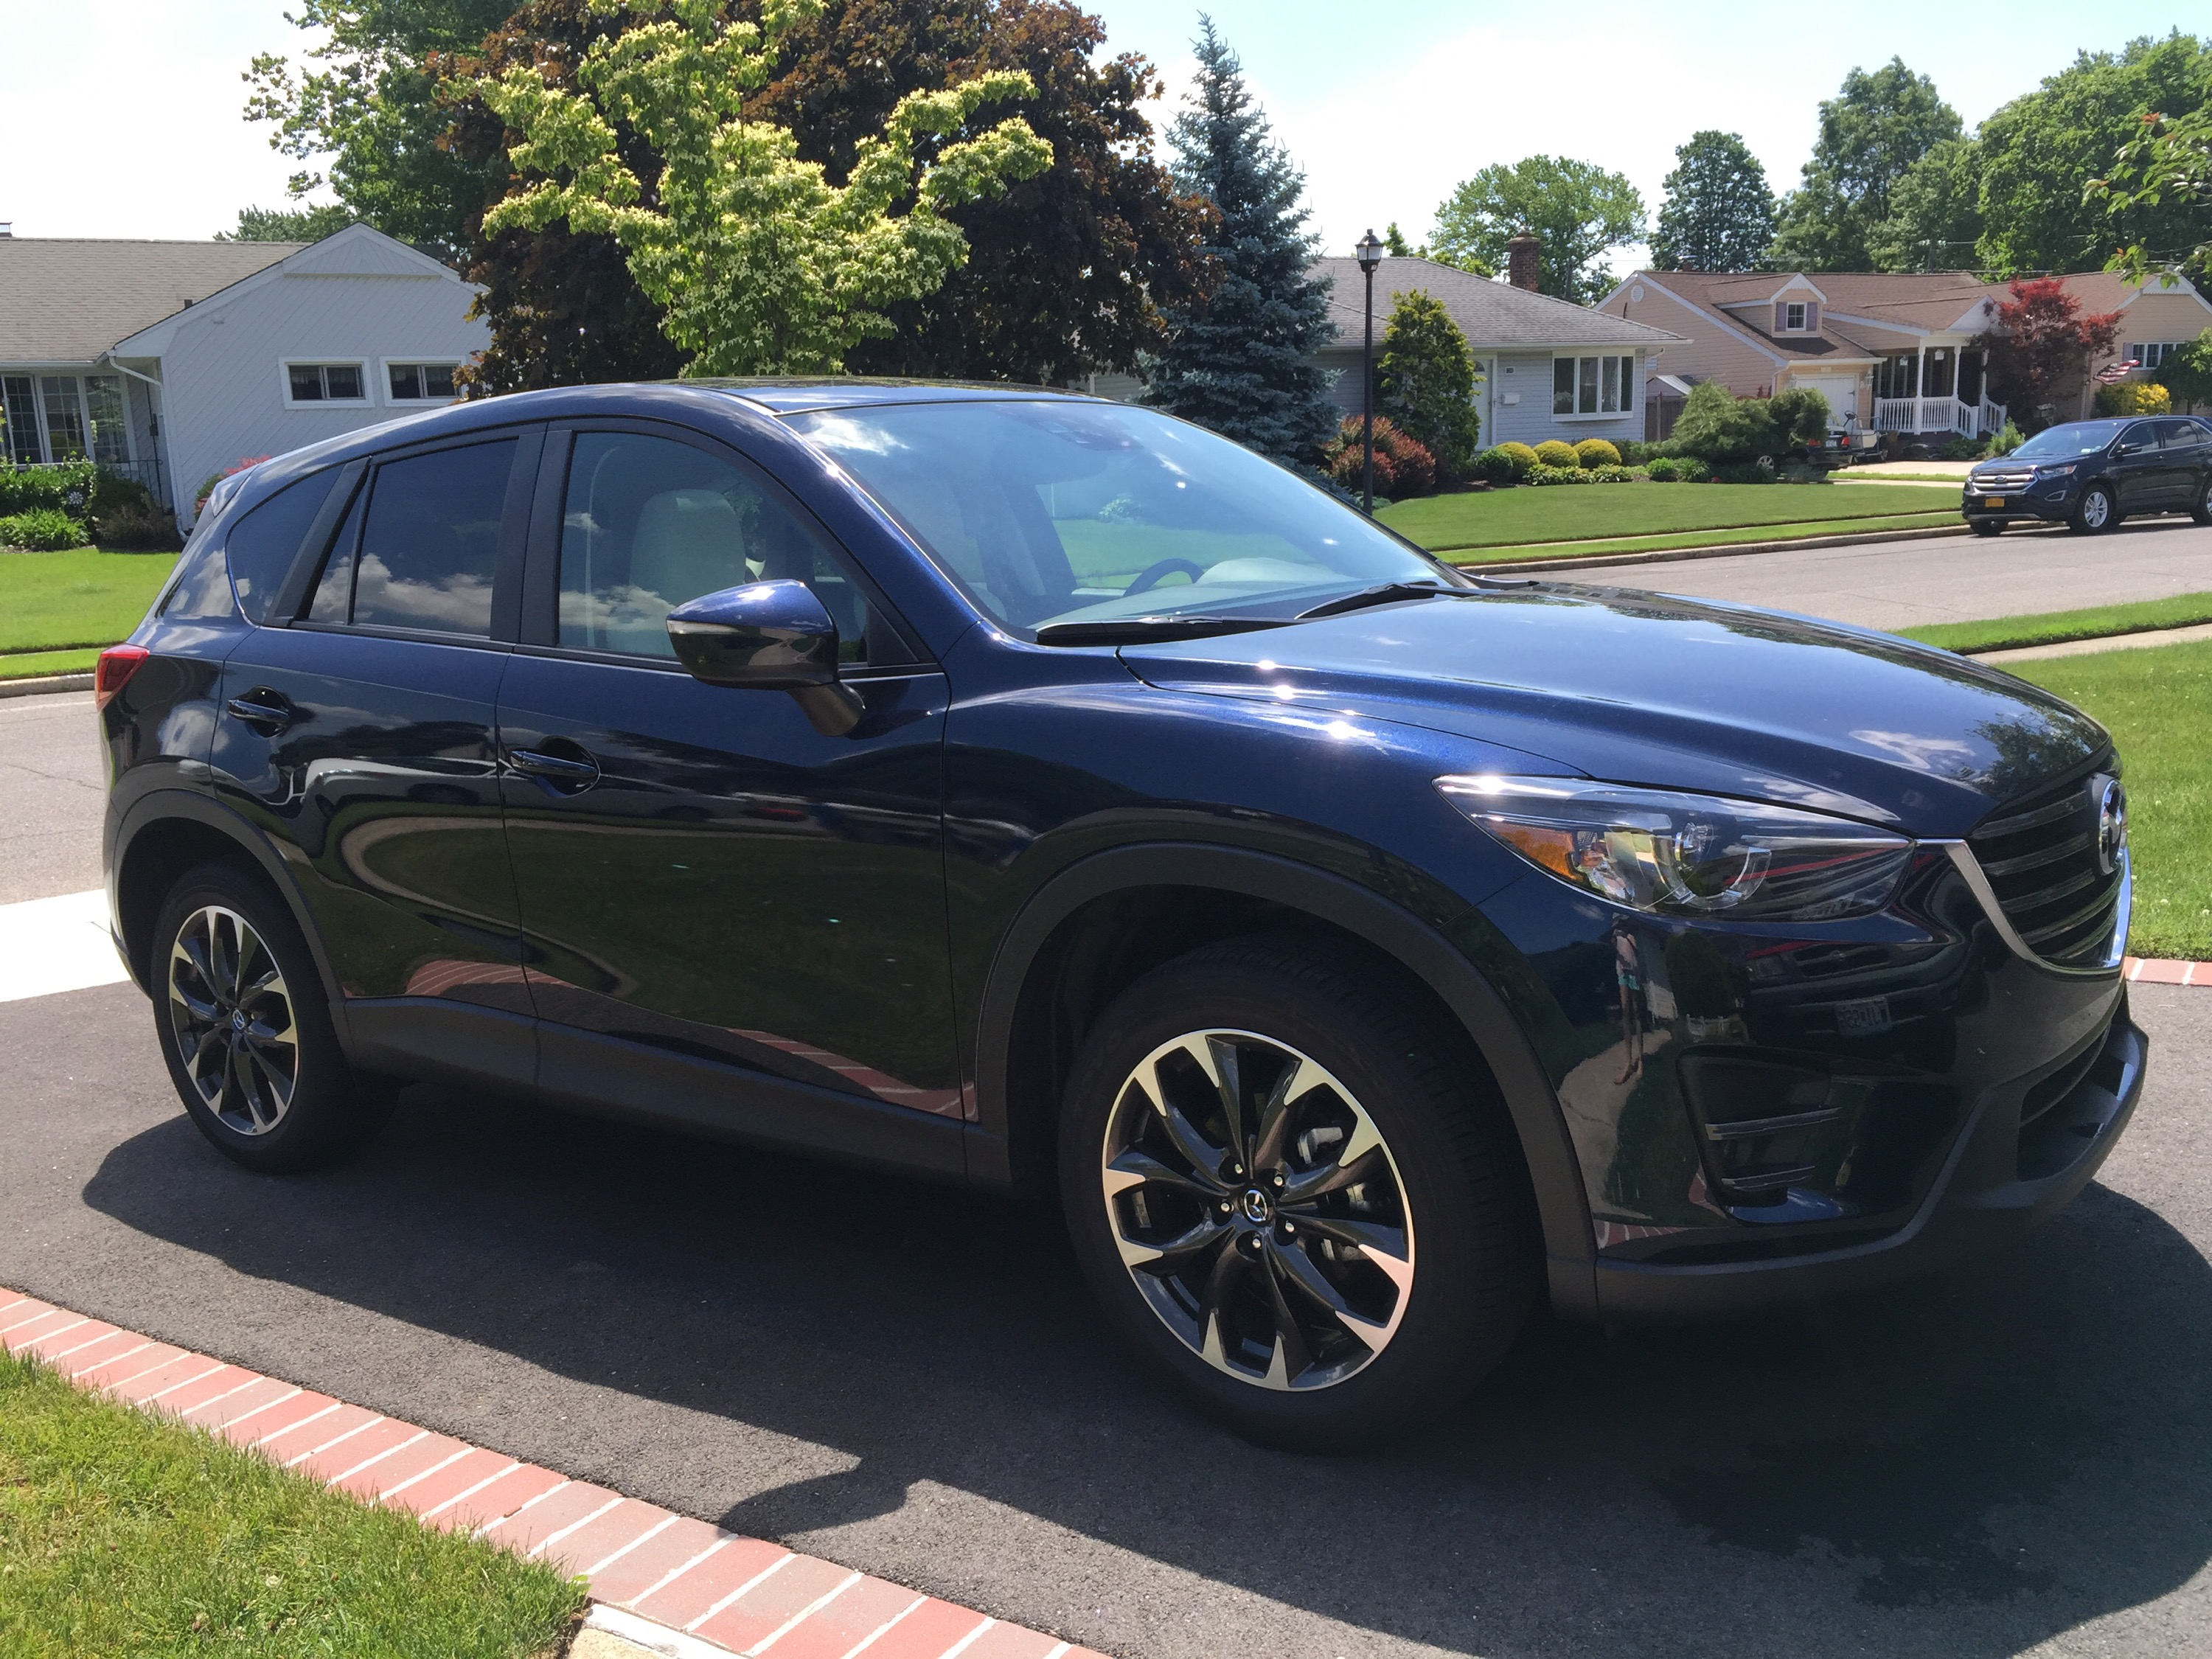 2016 mazda cx 5 grand touring review drivemazda unboxed mom. Black Bedroom Furniture Sets. Home Design Ideas